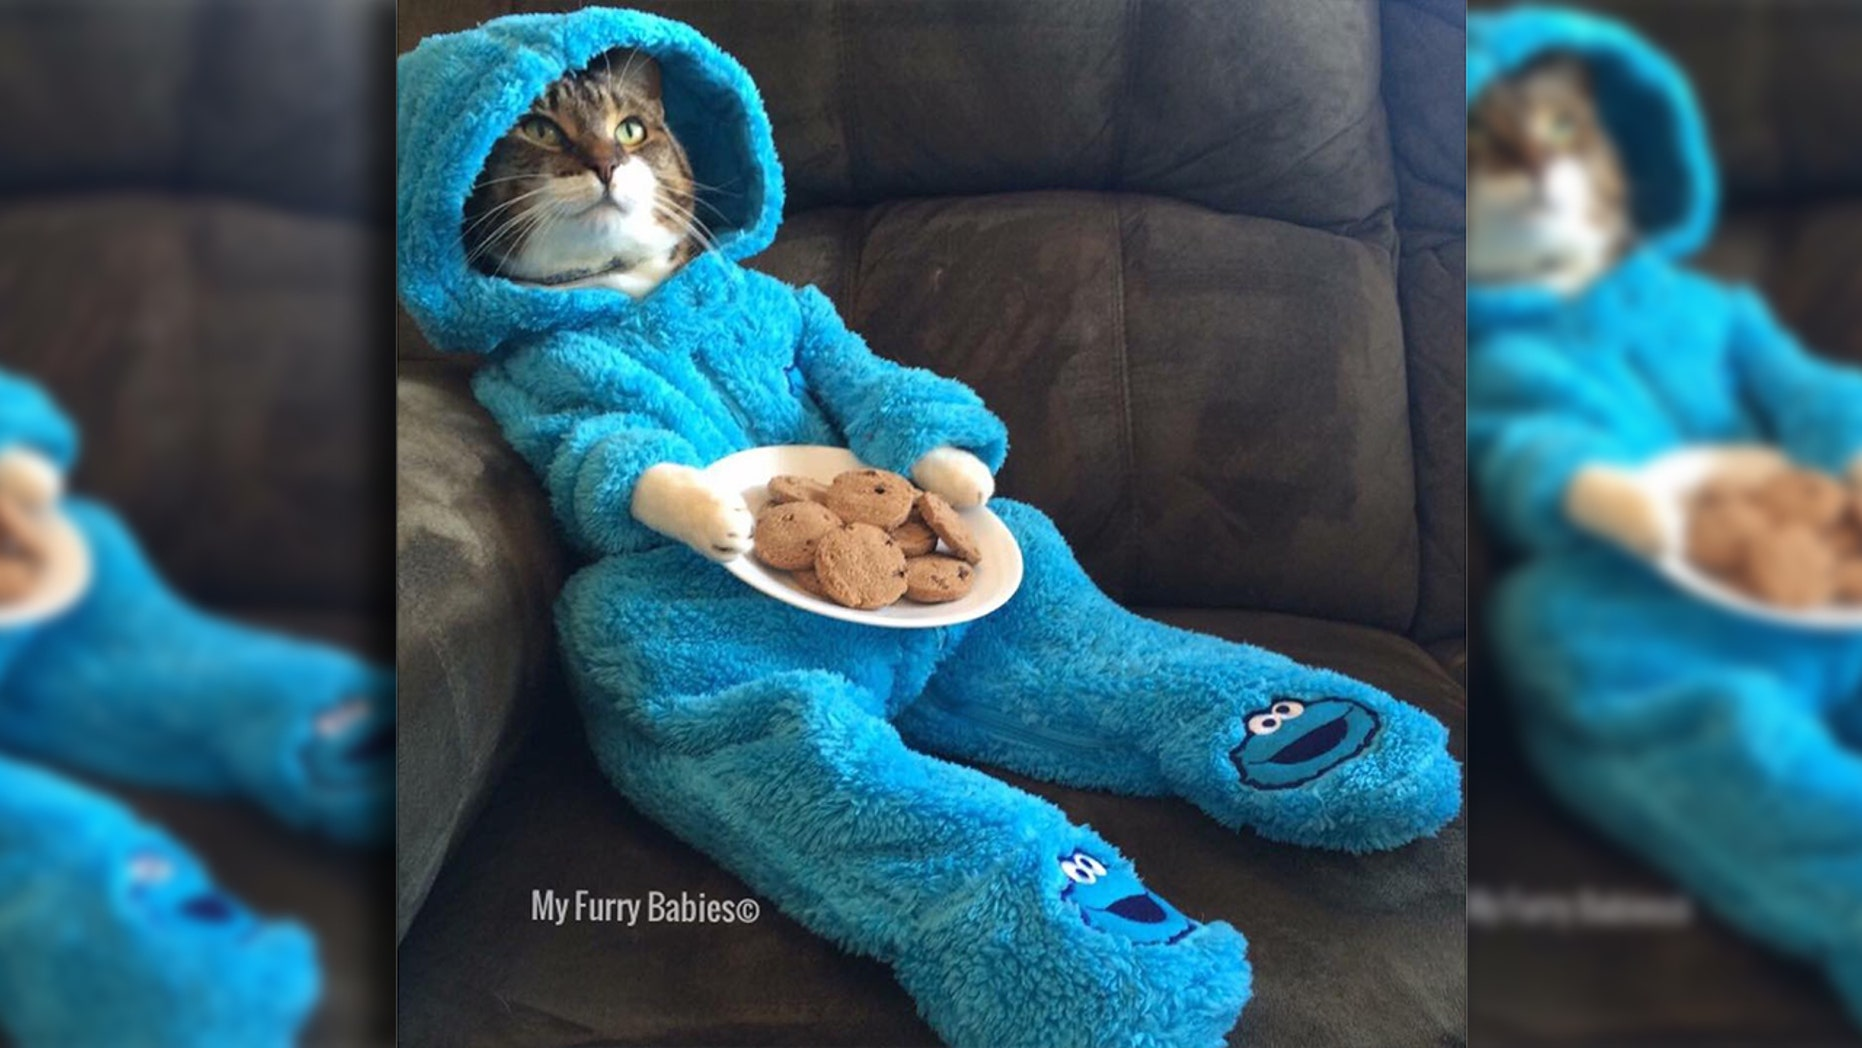 The U.S. Department of State sent out an email featuring this tabby cat dressed as the Cookie Monster.